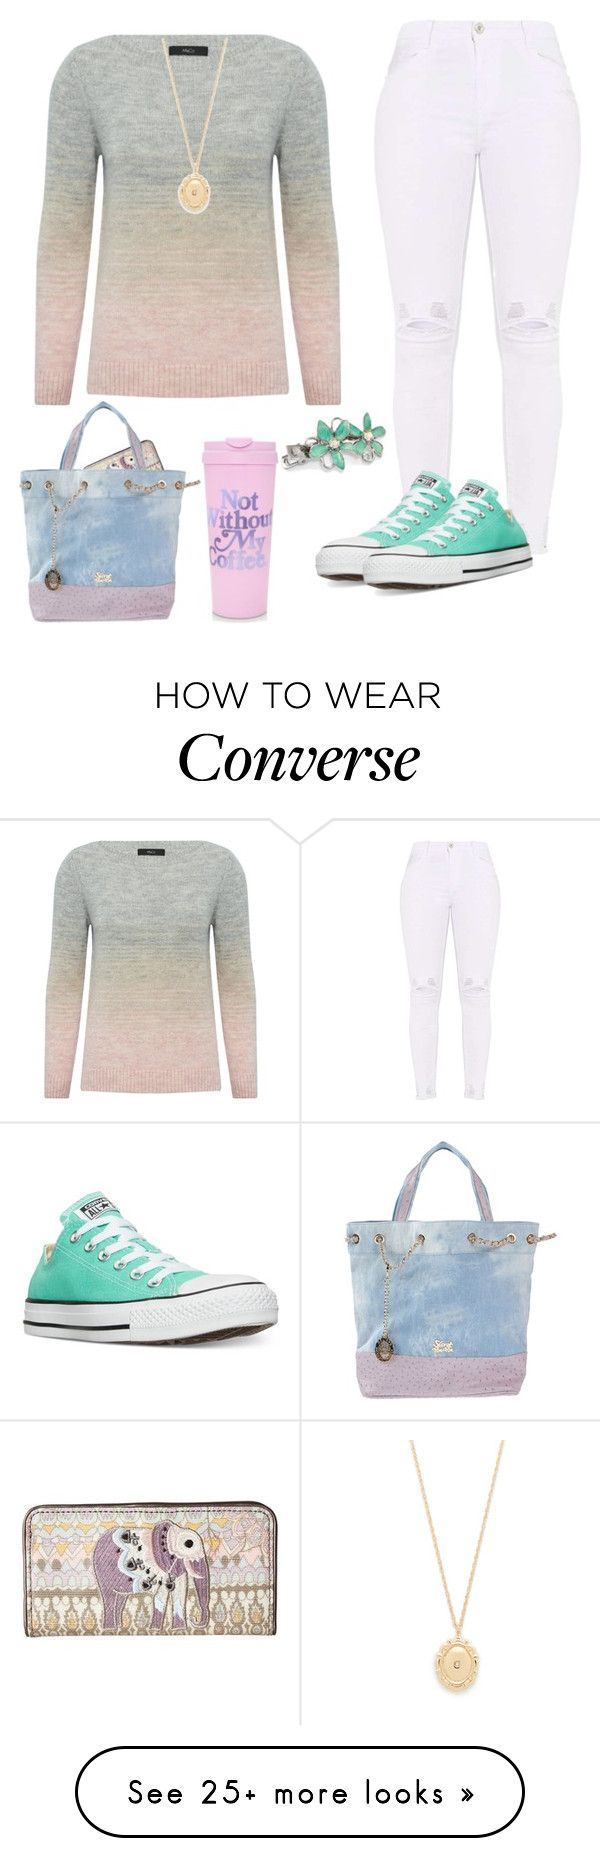 """Pastels"" by camrynmarie22 on Polyvore featuring M&Co, Sakroots, Jennifer Zeuner, Converse, 1928, ban.do, Secret PonPon and pastelsweaters"